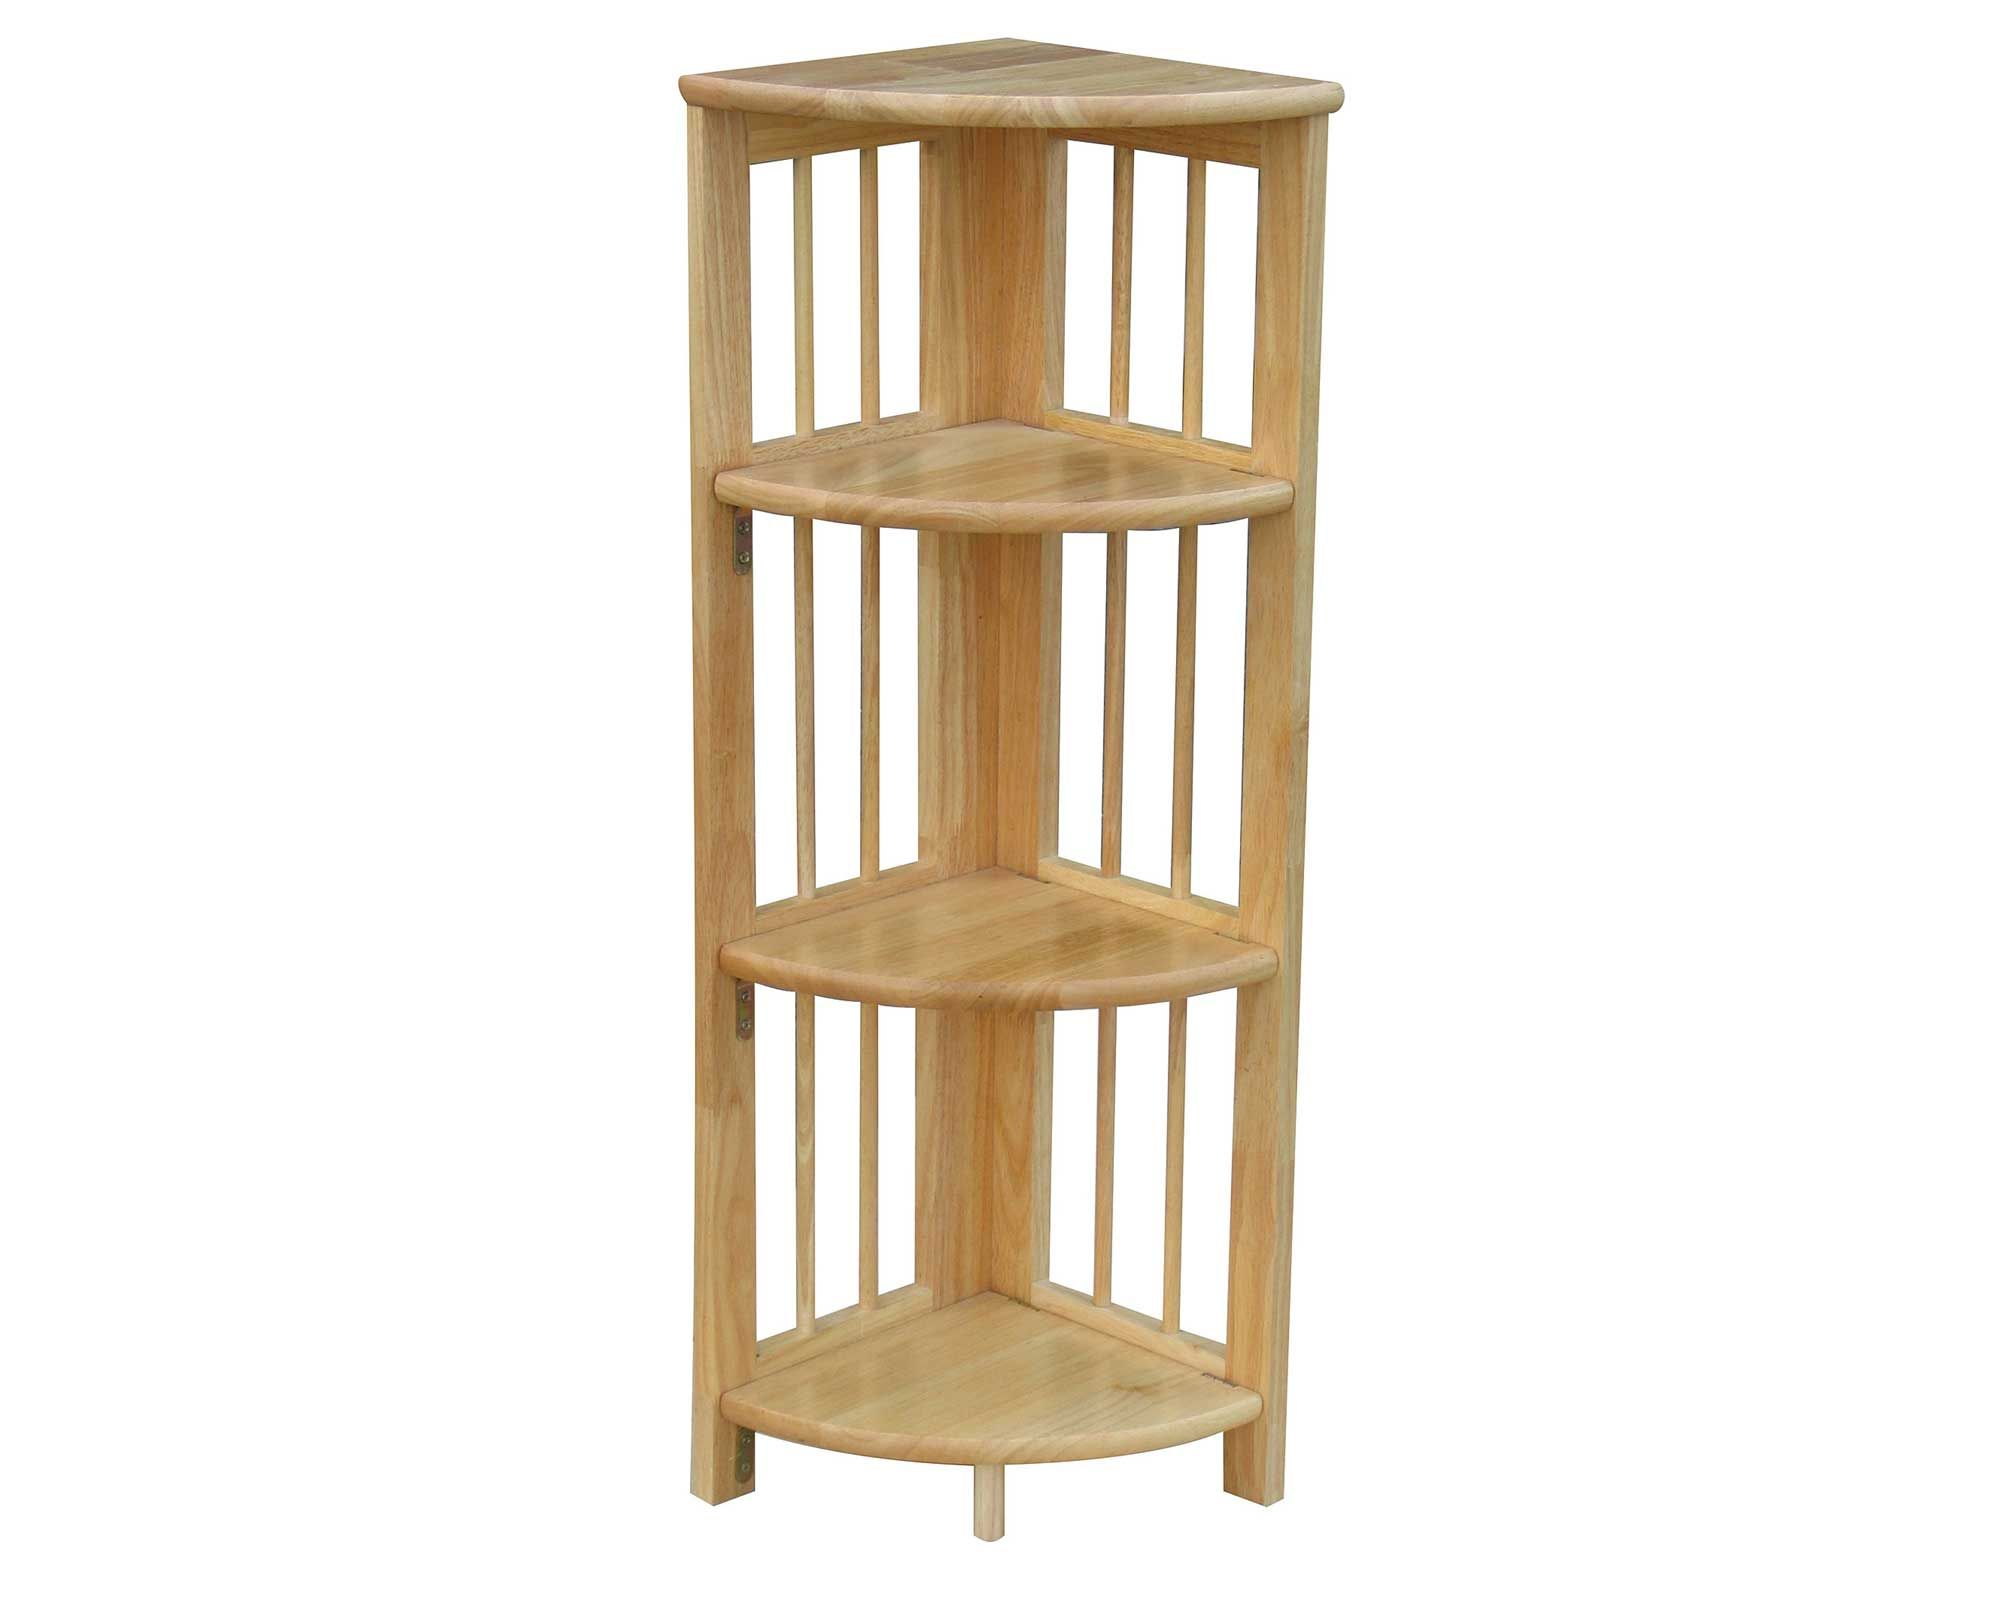 Fancy folding bookcase marvelous bookcase folding hardwood keep found it at wayfair 4 shelf corner folding bookcase in natural amipublicfo Image collections